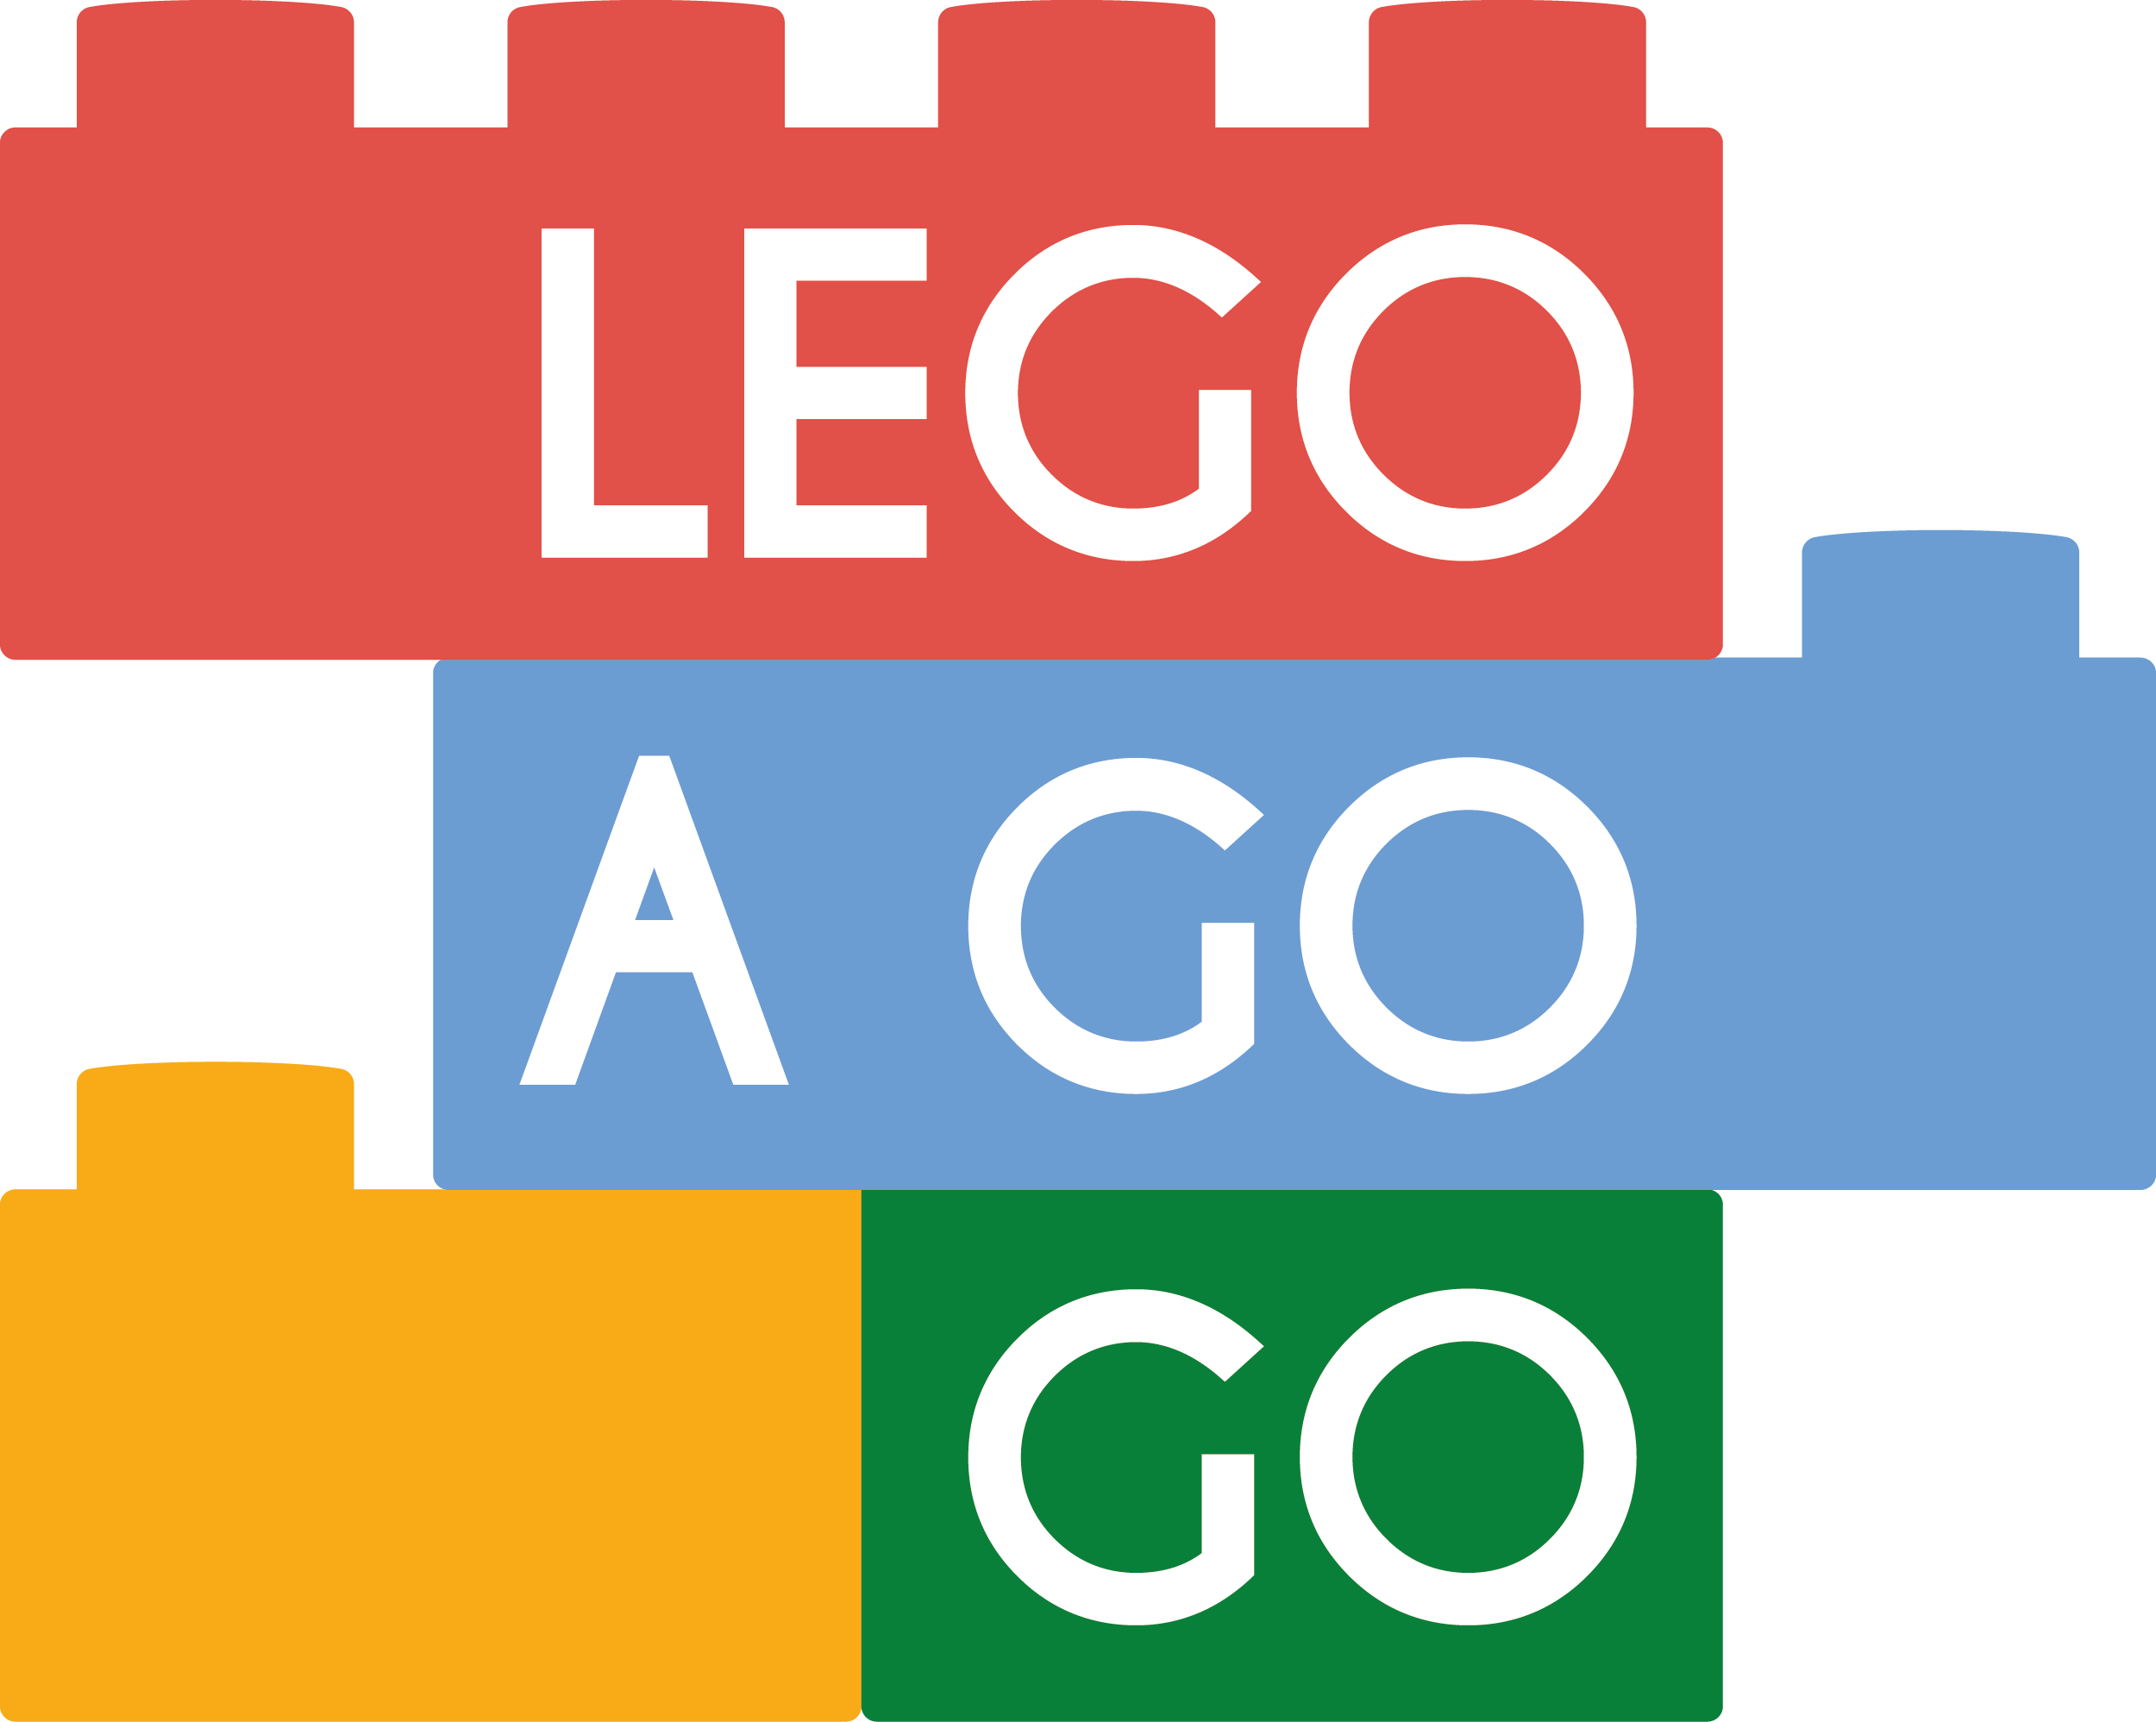 Legos clipart module. Upcoming events lego a